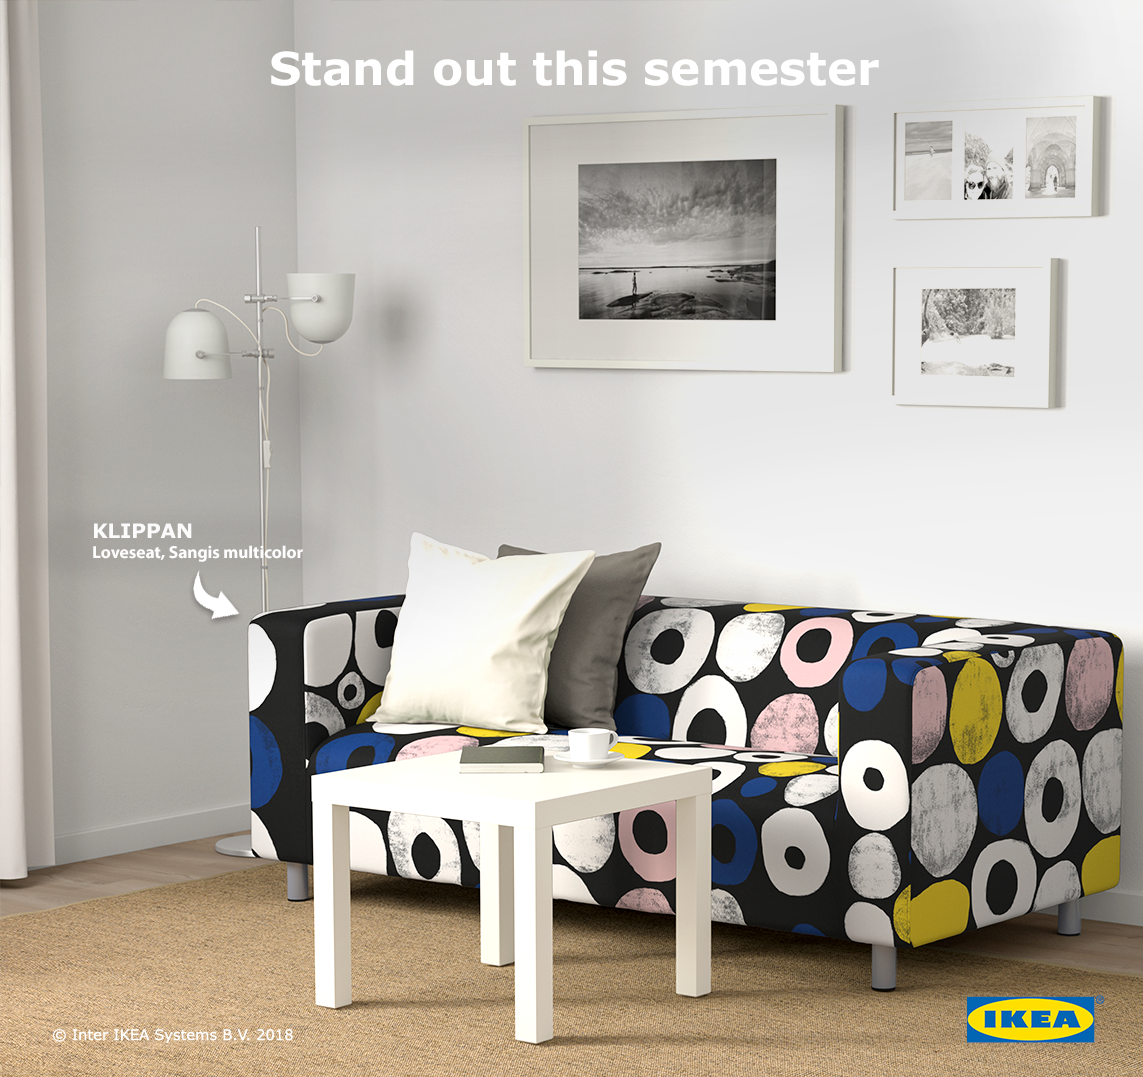 Bring Out Your Style With Bold Colors And Shapes Match Kilippan Loveseat With Minimal Tones In Your Living Spa Dorm Room Furniture Ikea Sofa Ikea Klippan Sofa